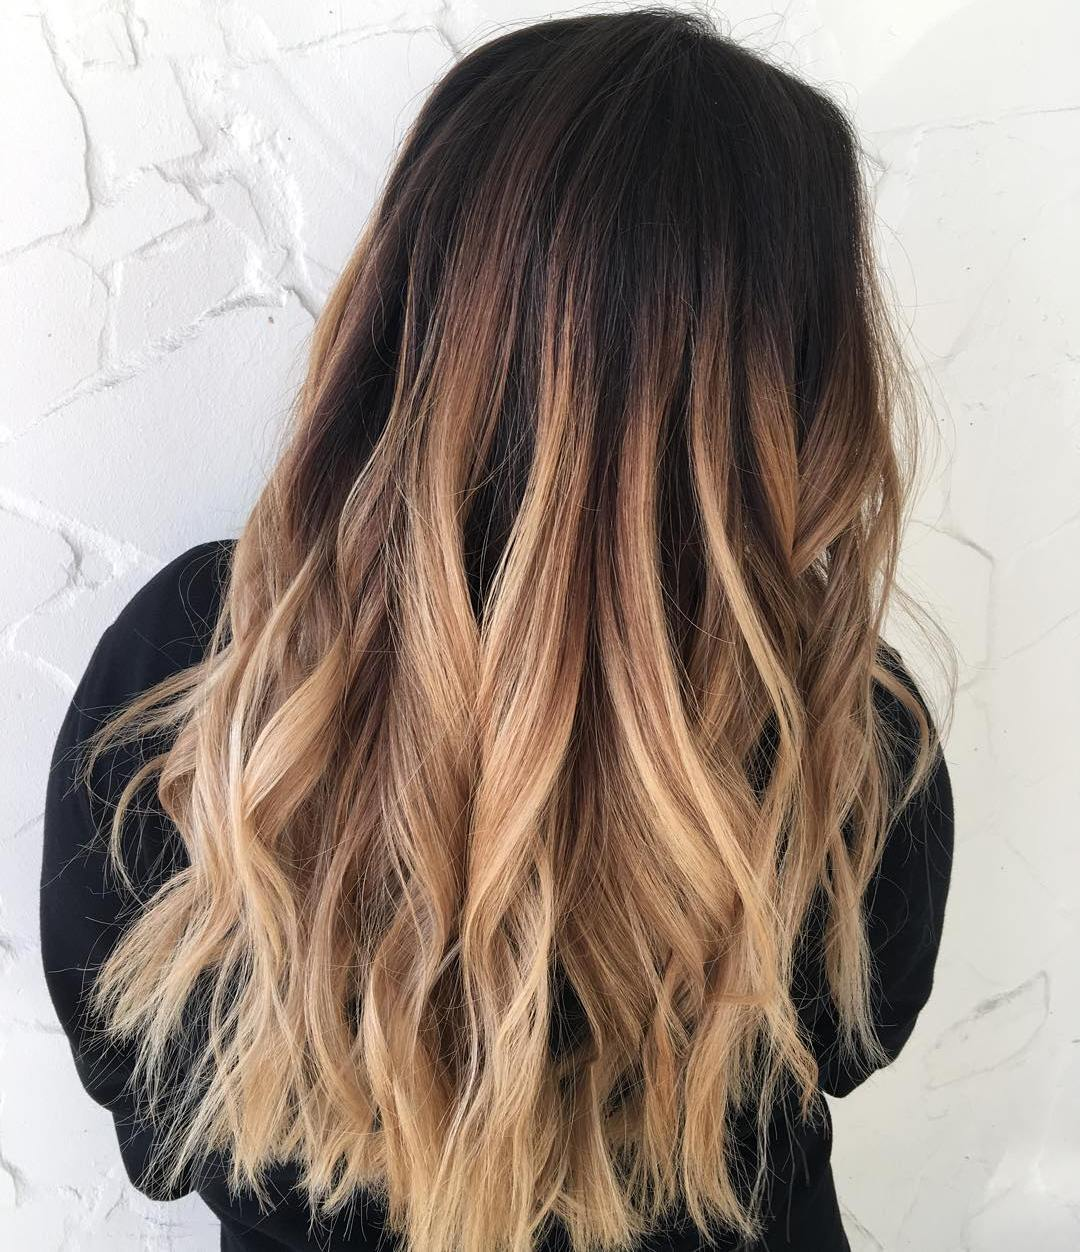 3-dark-brown-to-sandy-blonde-ombre